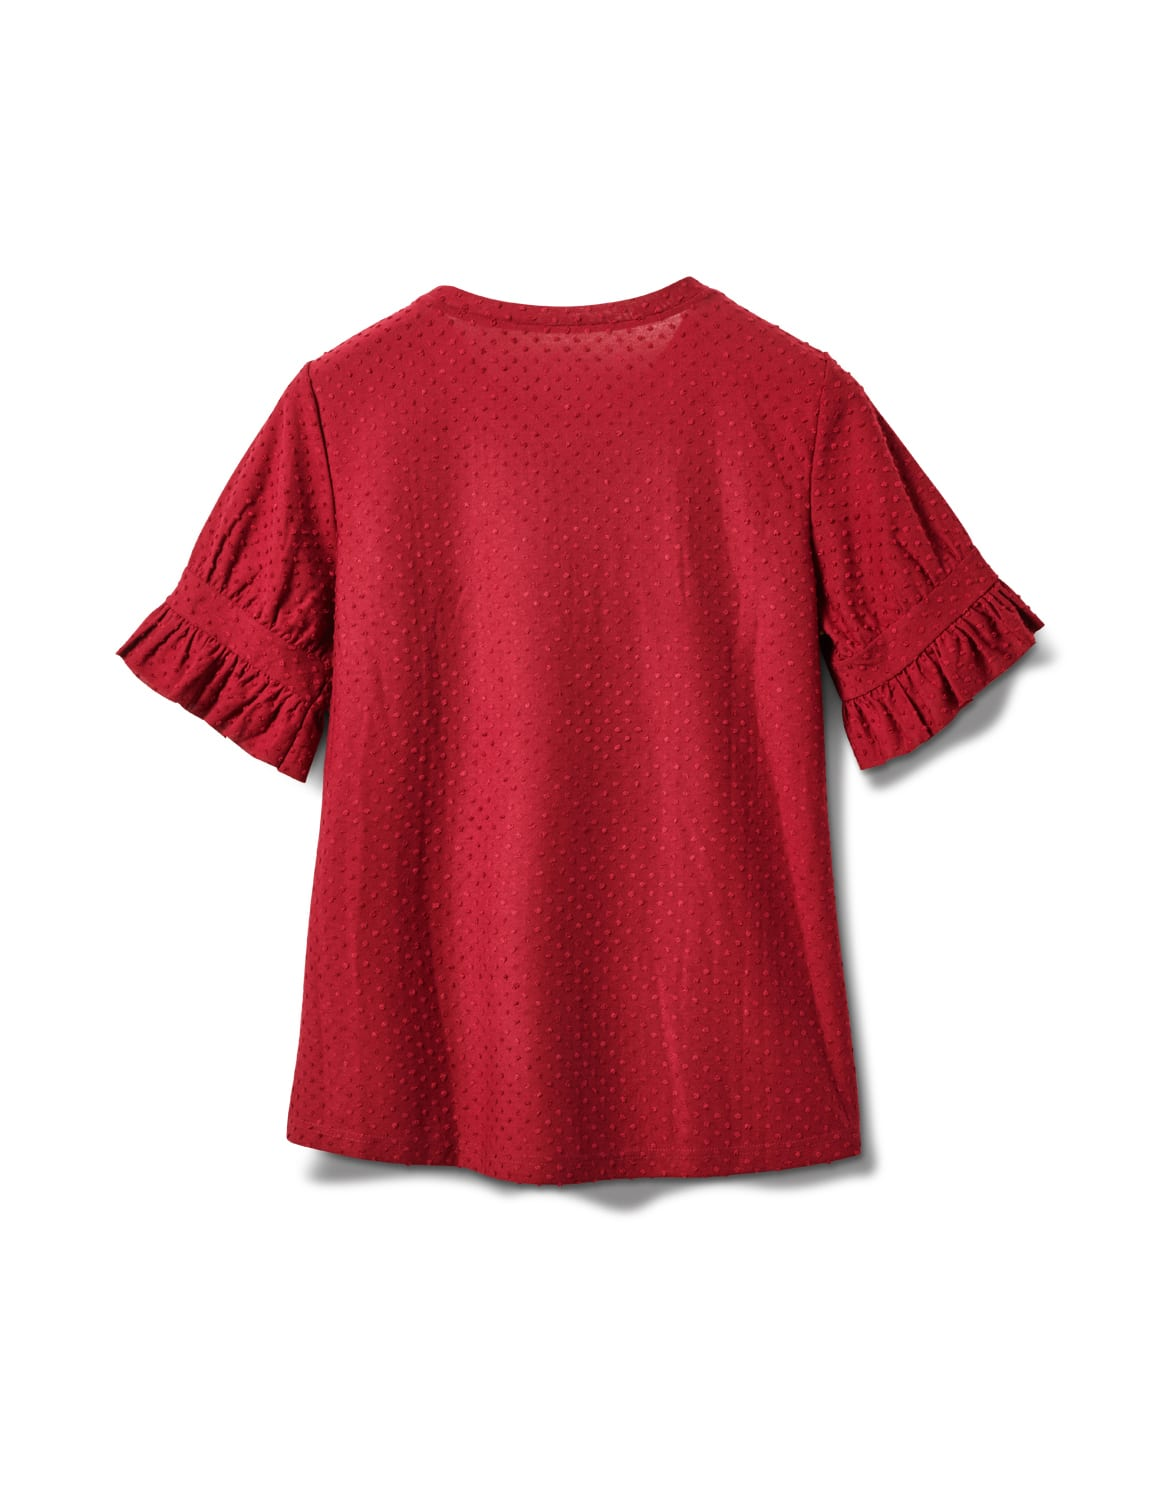 Ruffle Sleeve Clip Dot Tee - Burgundy - Back